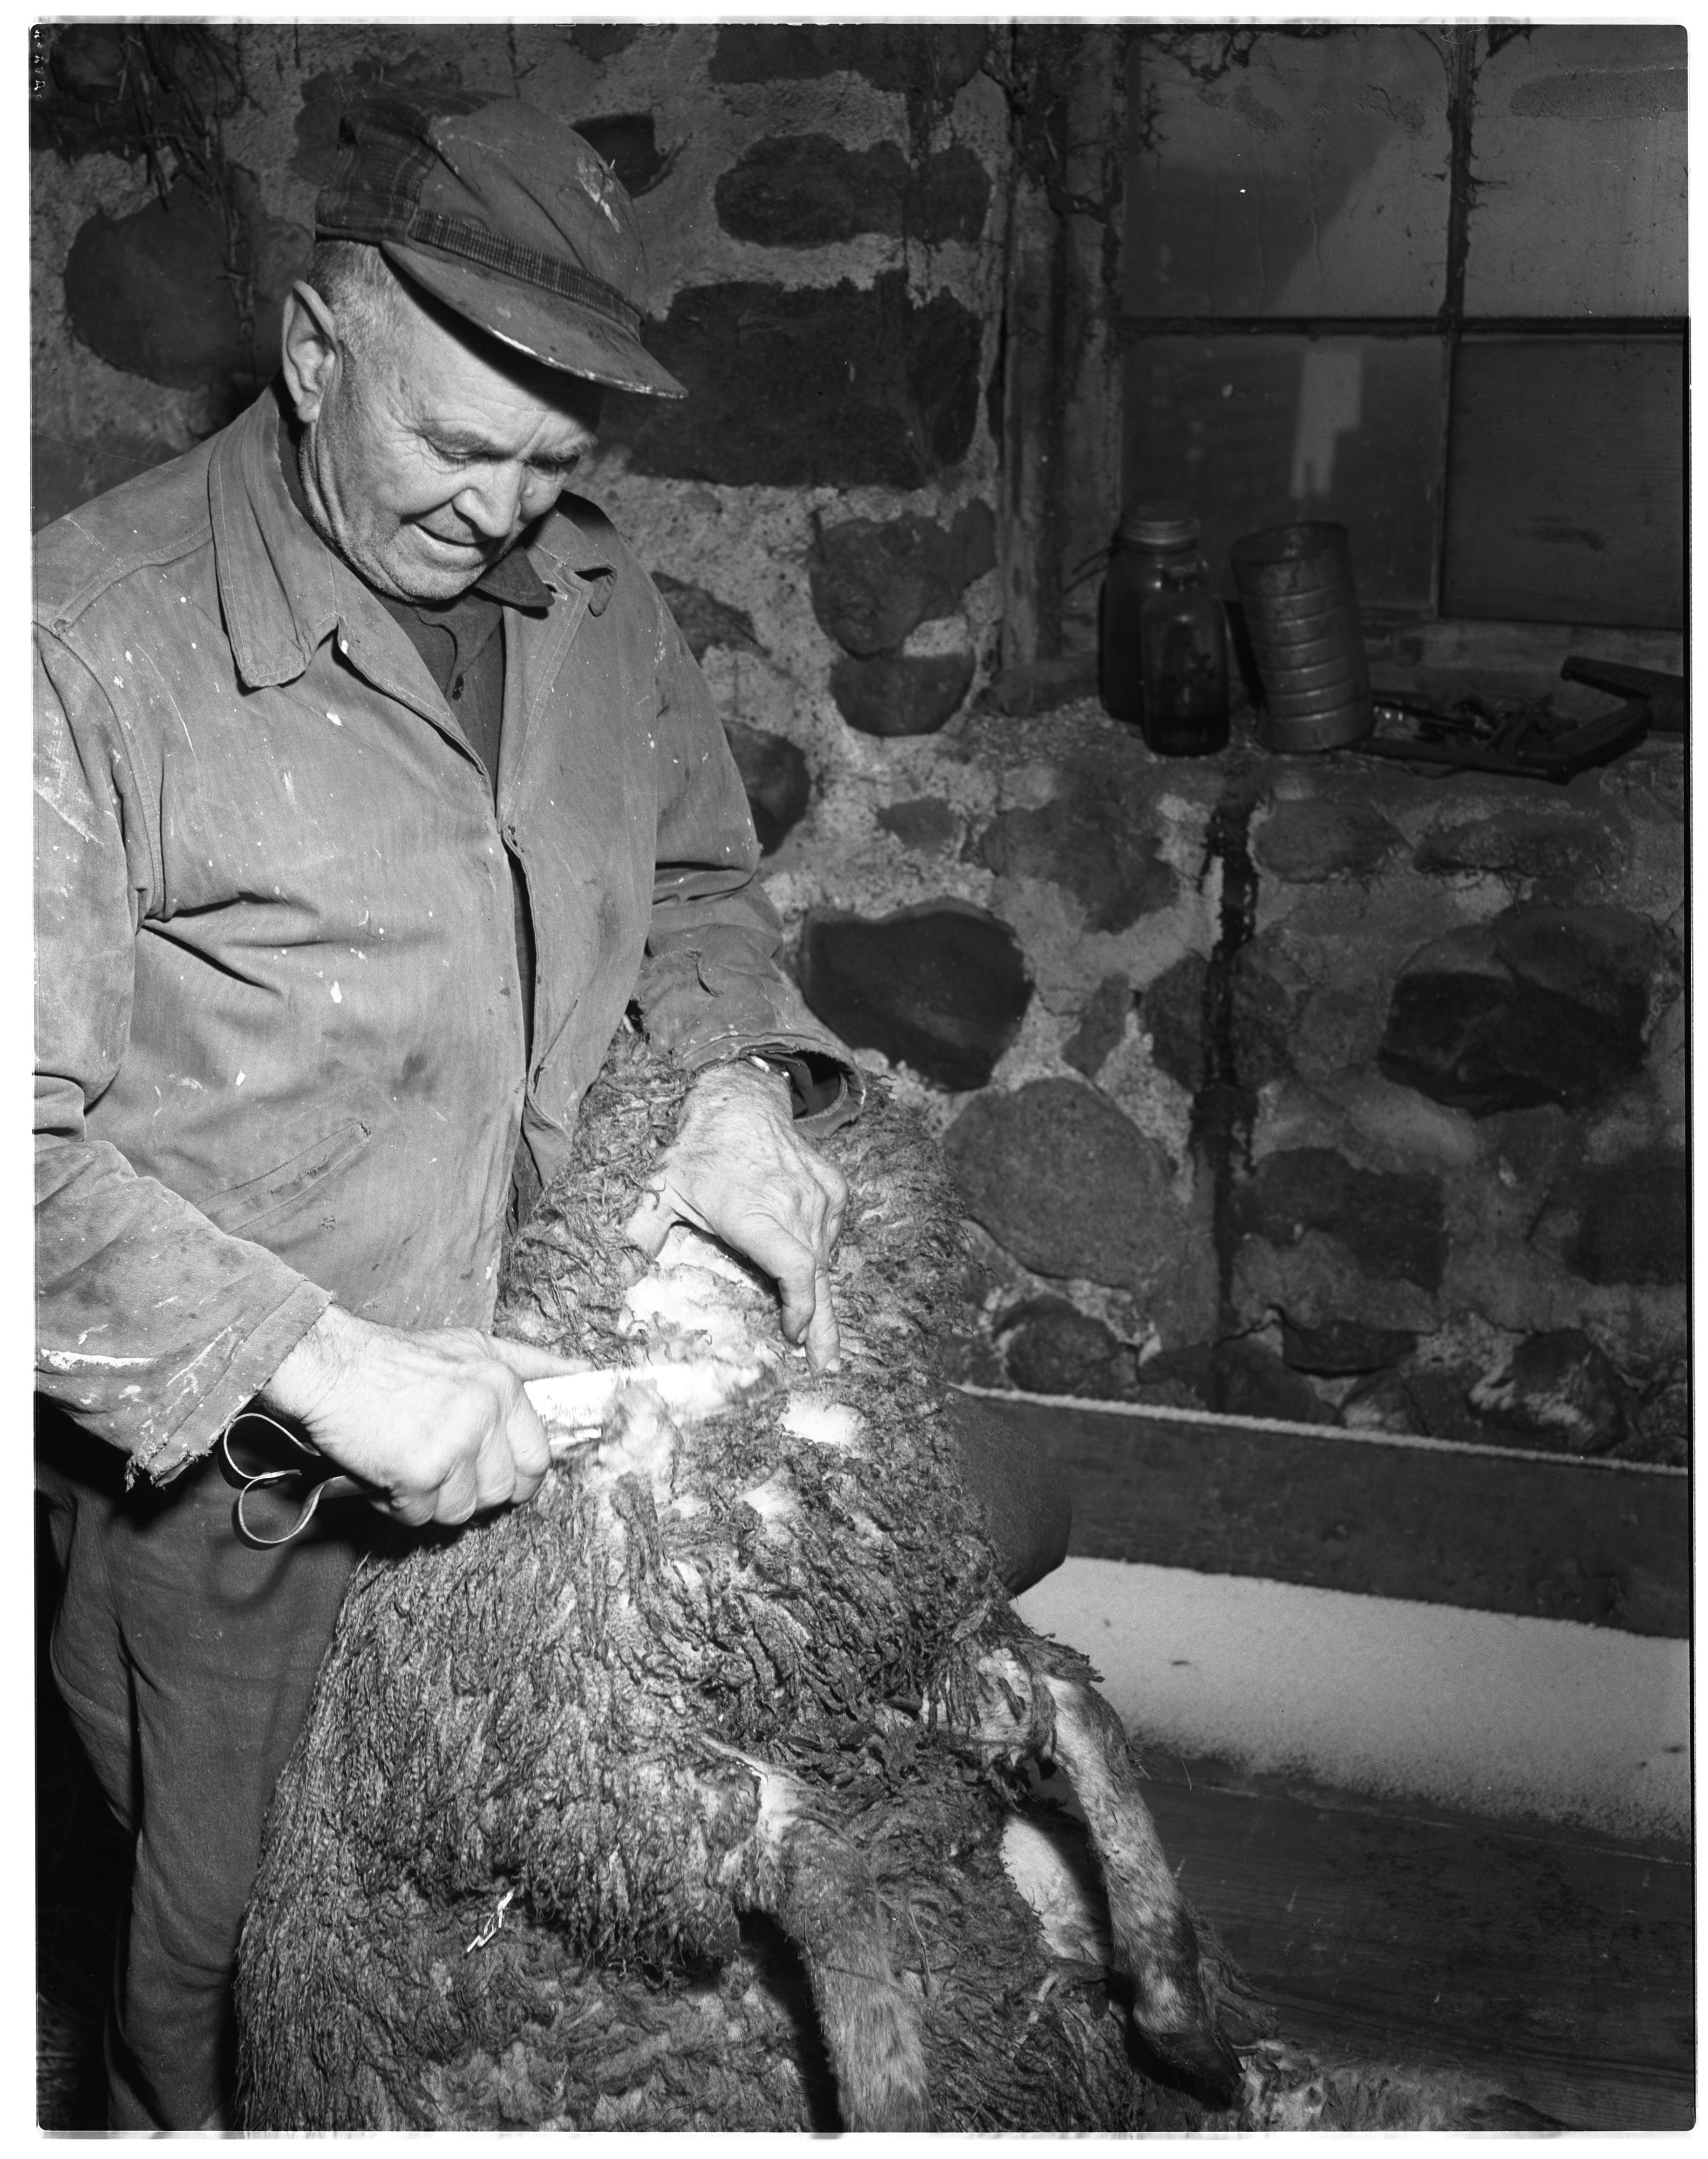 C.D. Finkbeiner Shearing Sheep image